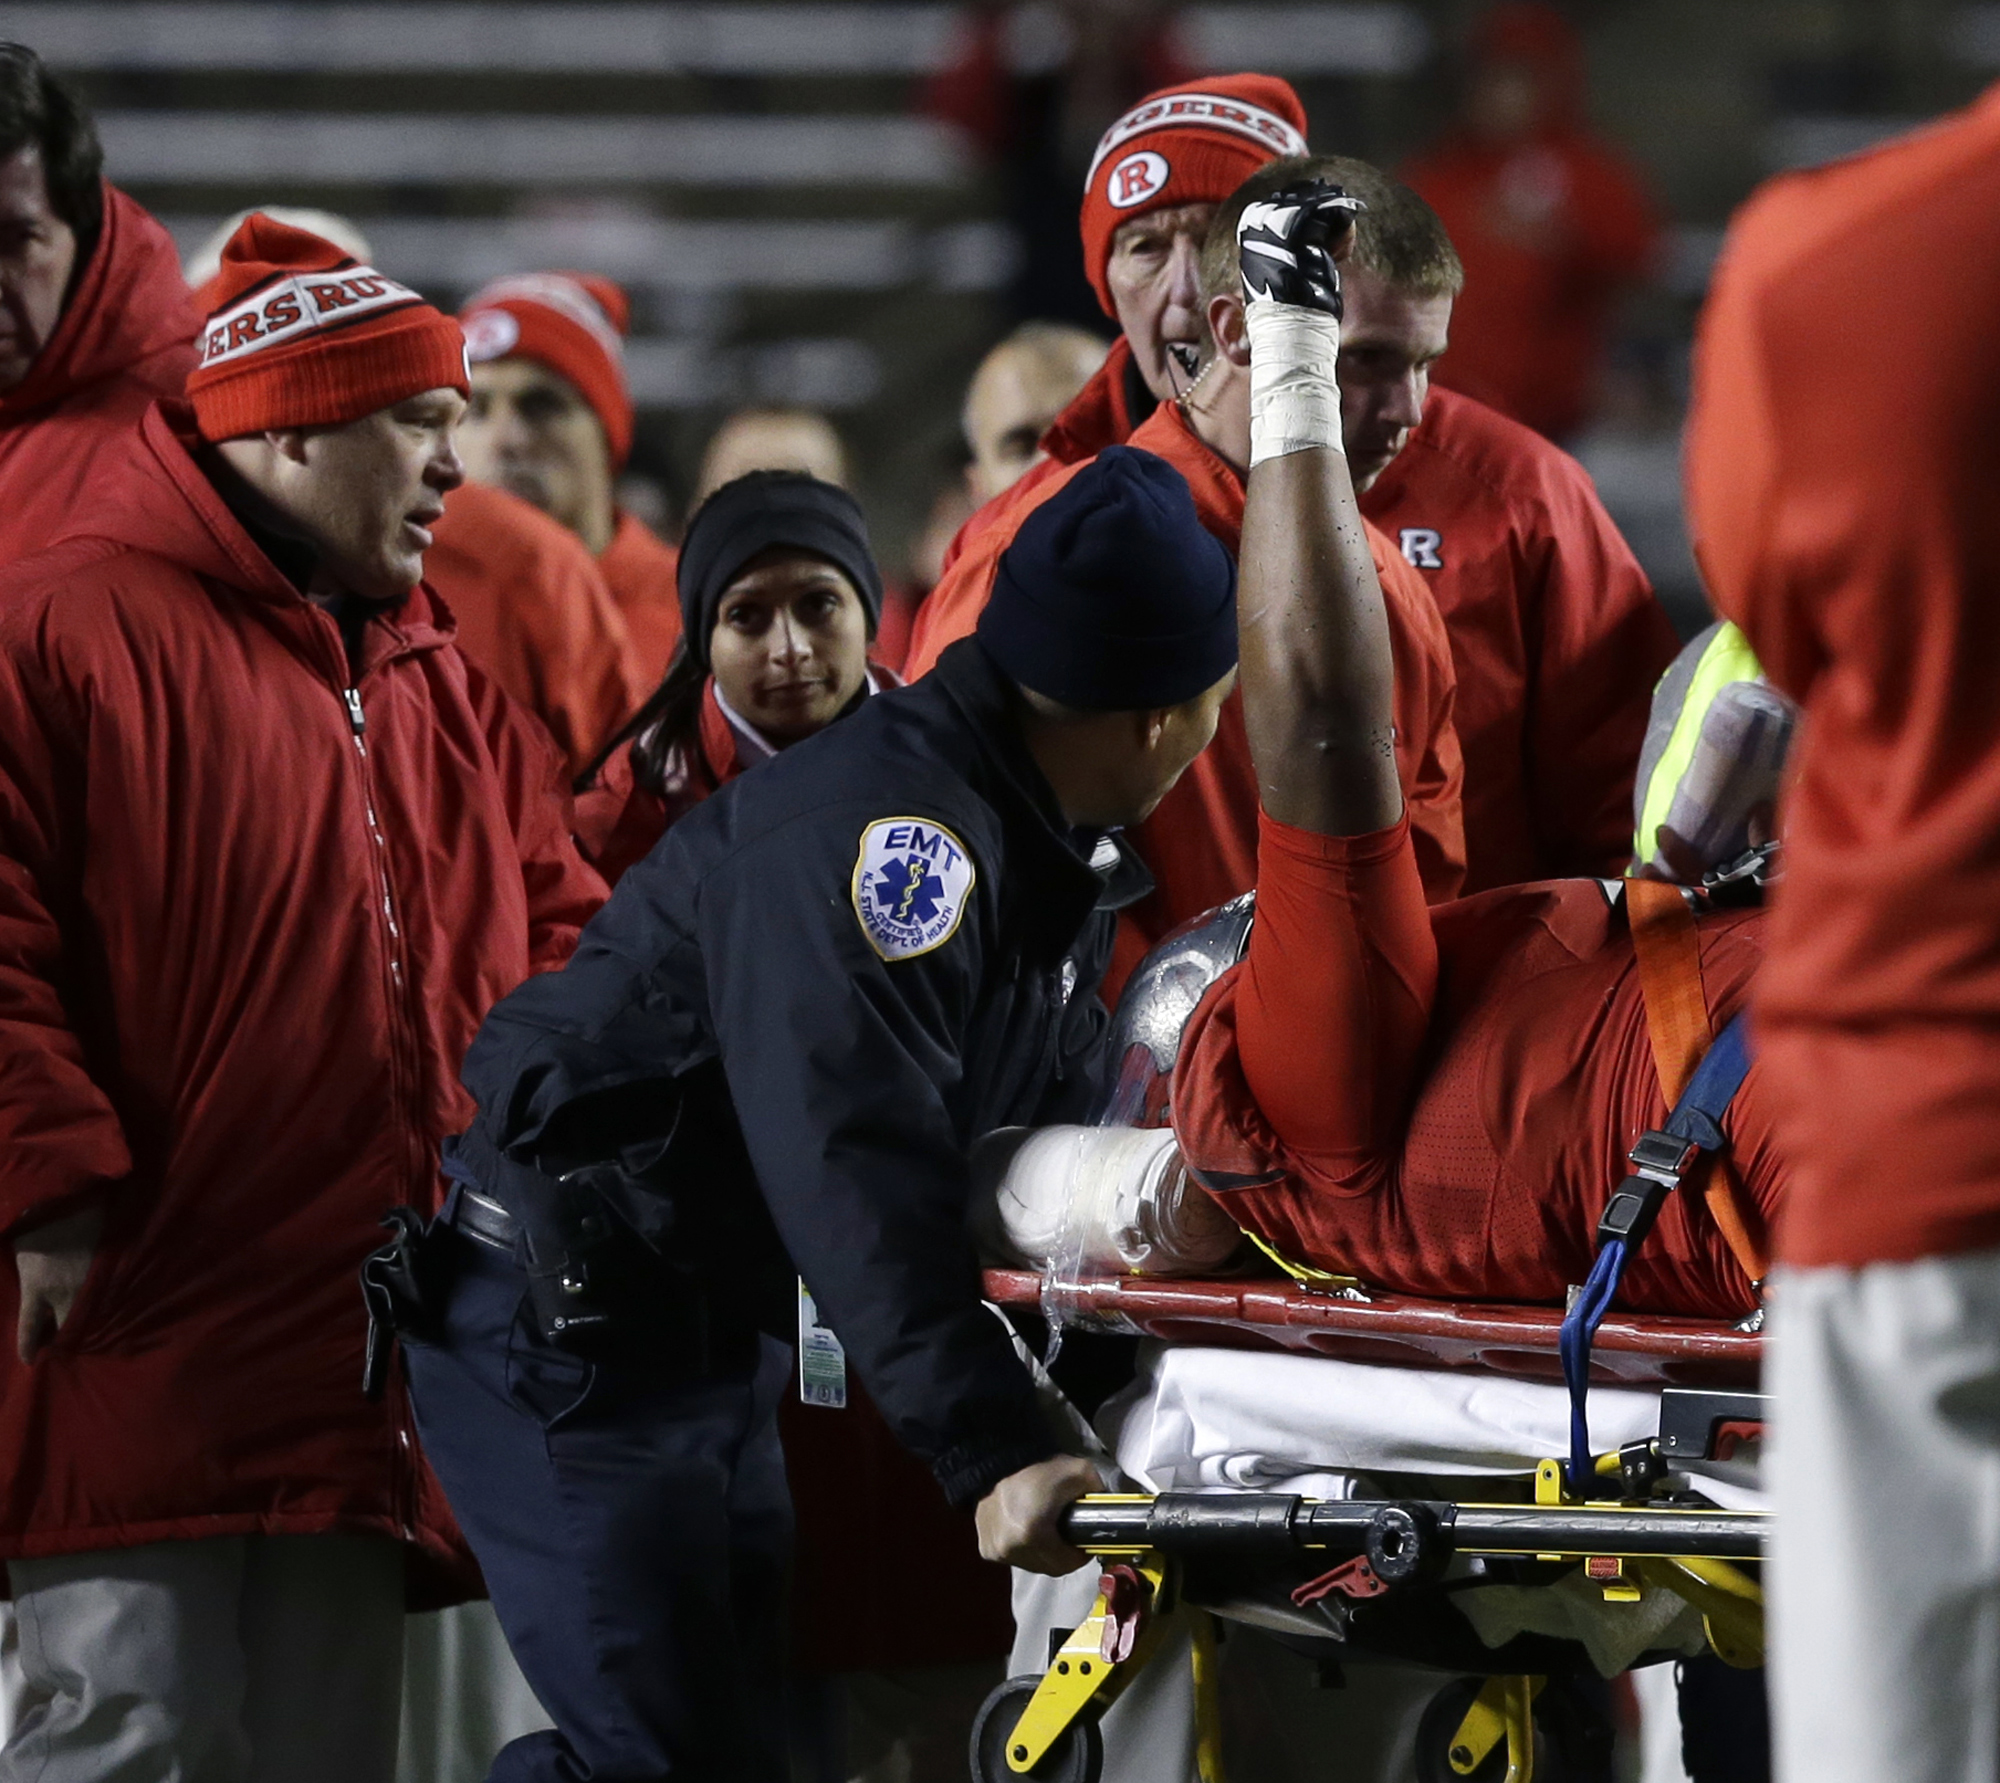 Injured Rutgers offensive lineman Derrick Nelson holds up his fist as medical personnel remove him from the field late in the second half of an NCAA college football game against Nebraska, Saturday, Nov. 14, 2015, in Piscataway, N.J. Nebraska won 31-14. (